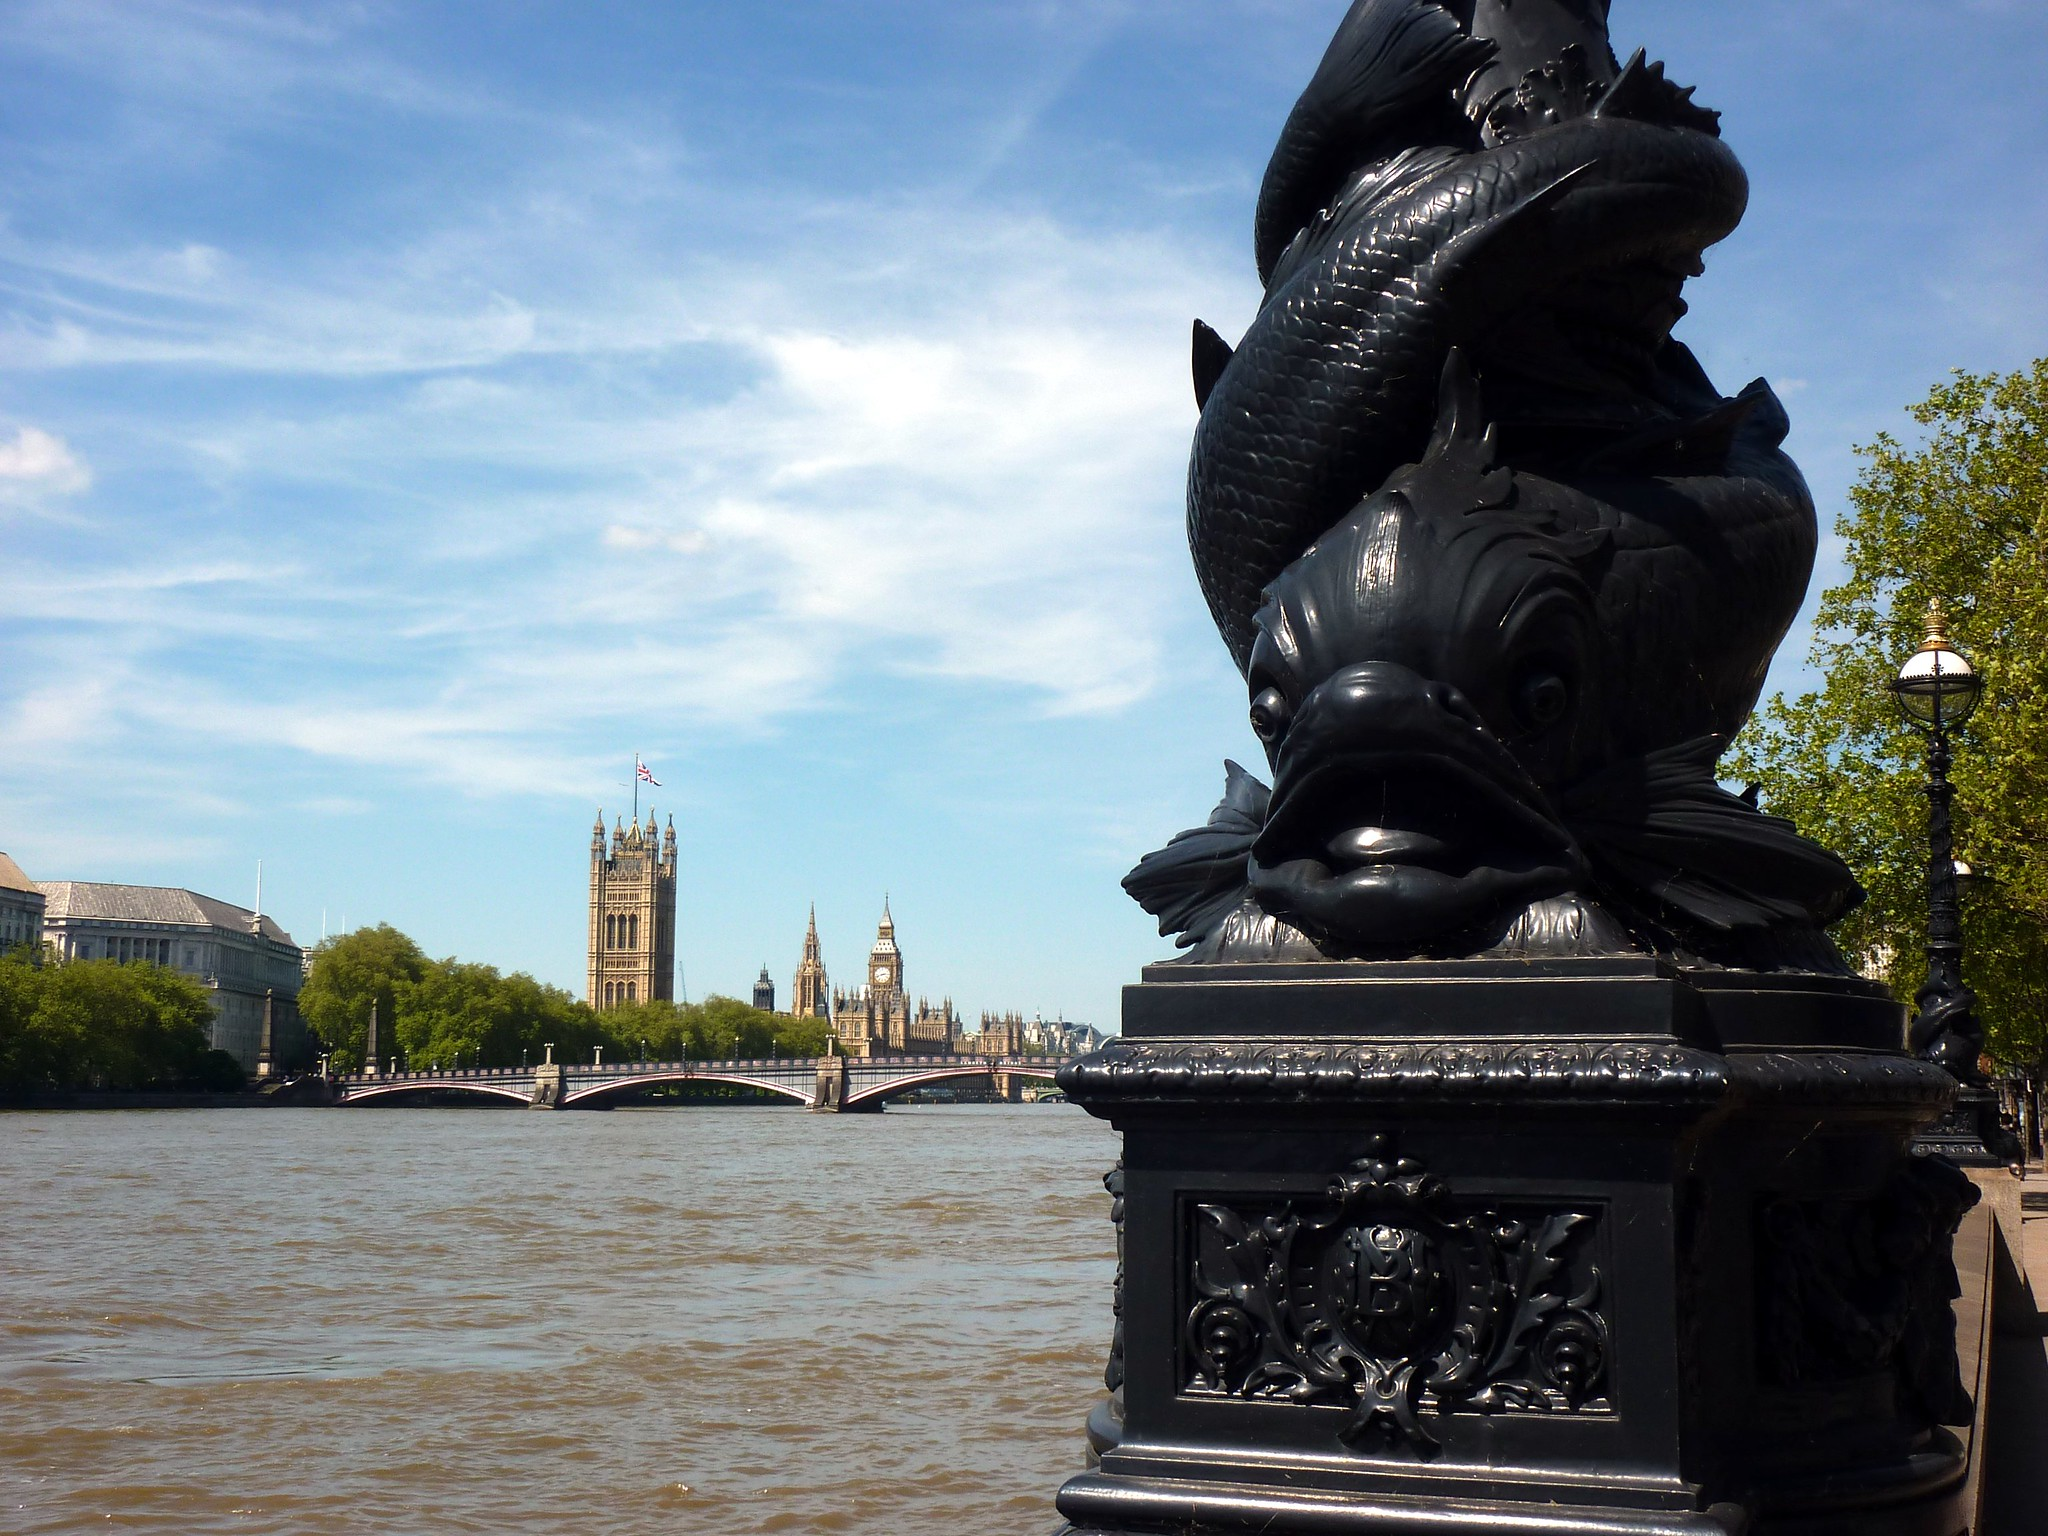 Sturgeon Lampost on the bank of the Thames